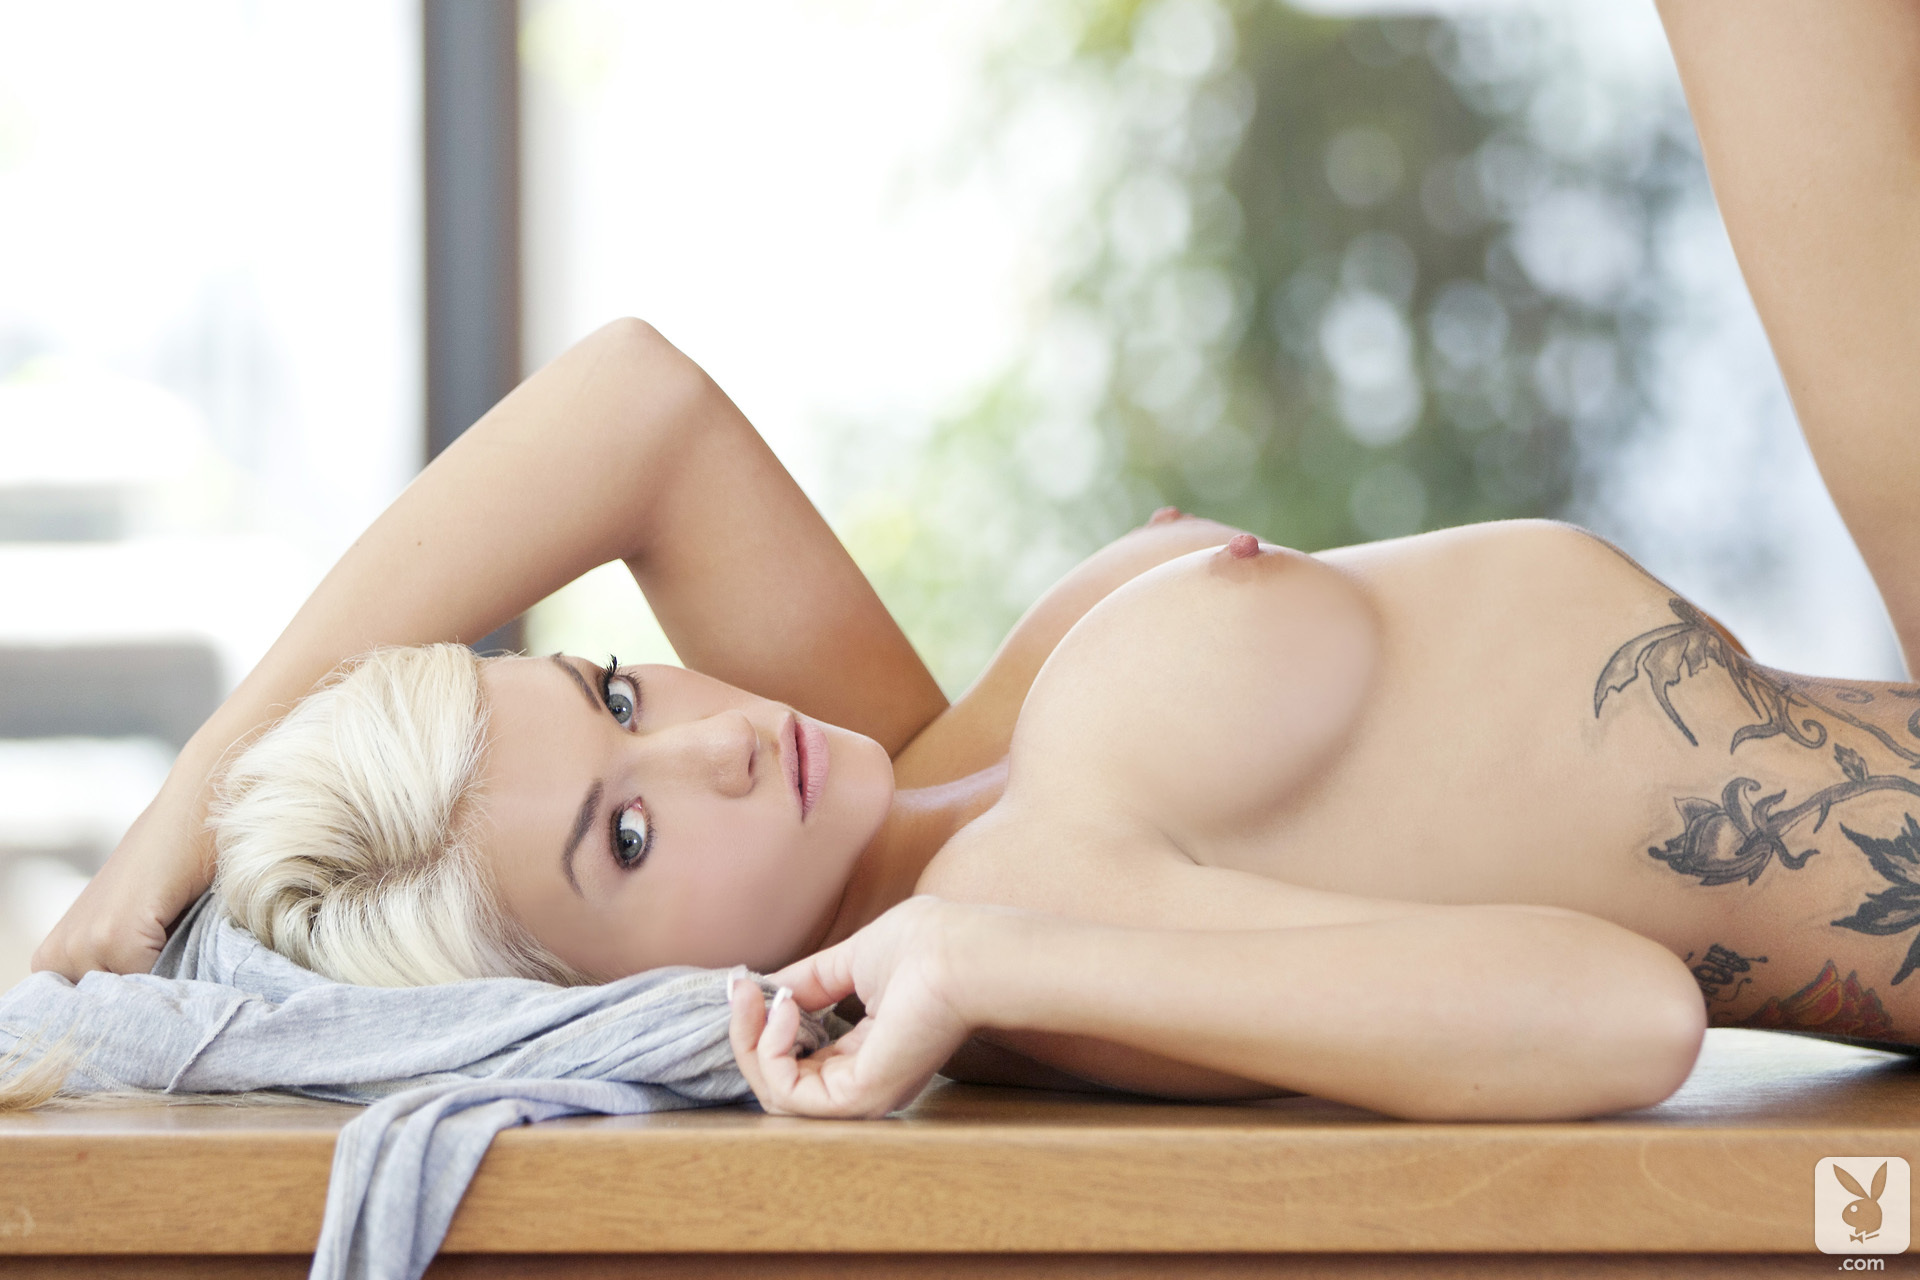 Taylor Seinturier Cybergirl Of The Month July 2012 Blonde Lust (20)